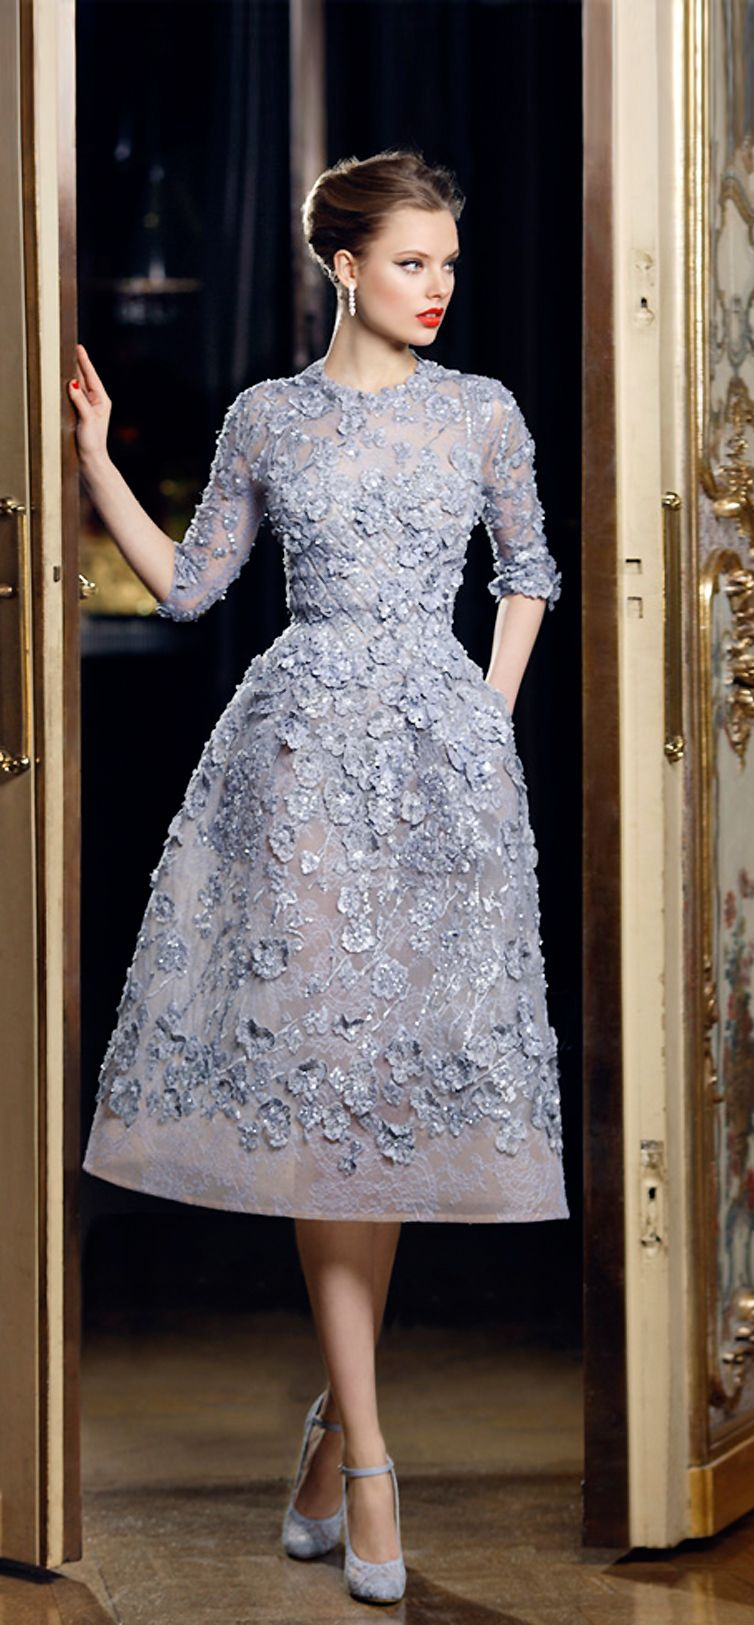 15542c5197258 Elie Saab at Couture Spring 2013 | Dress | Fashion, Dresses, Elegant ...